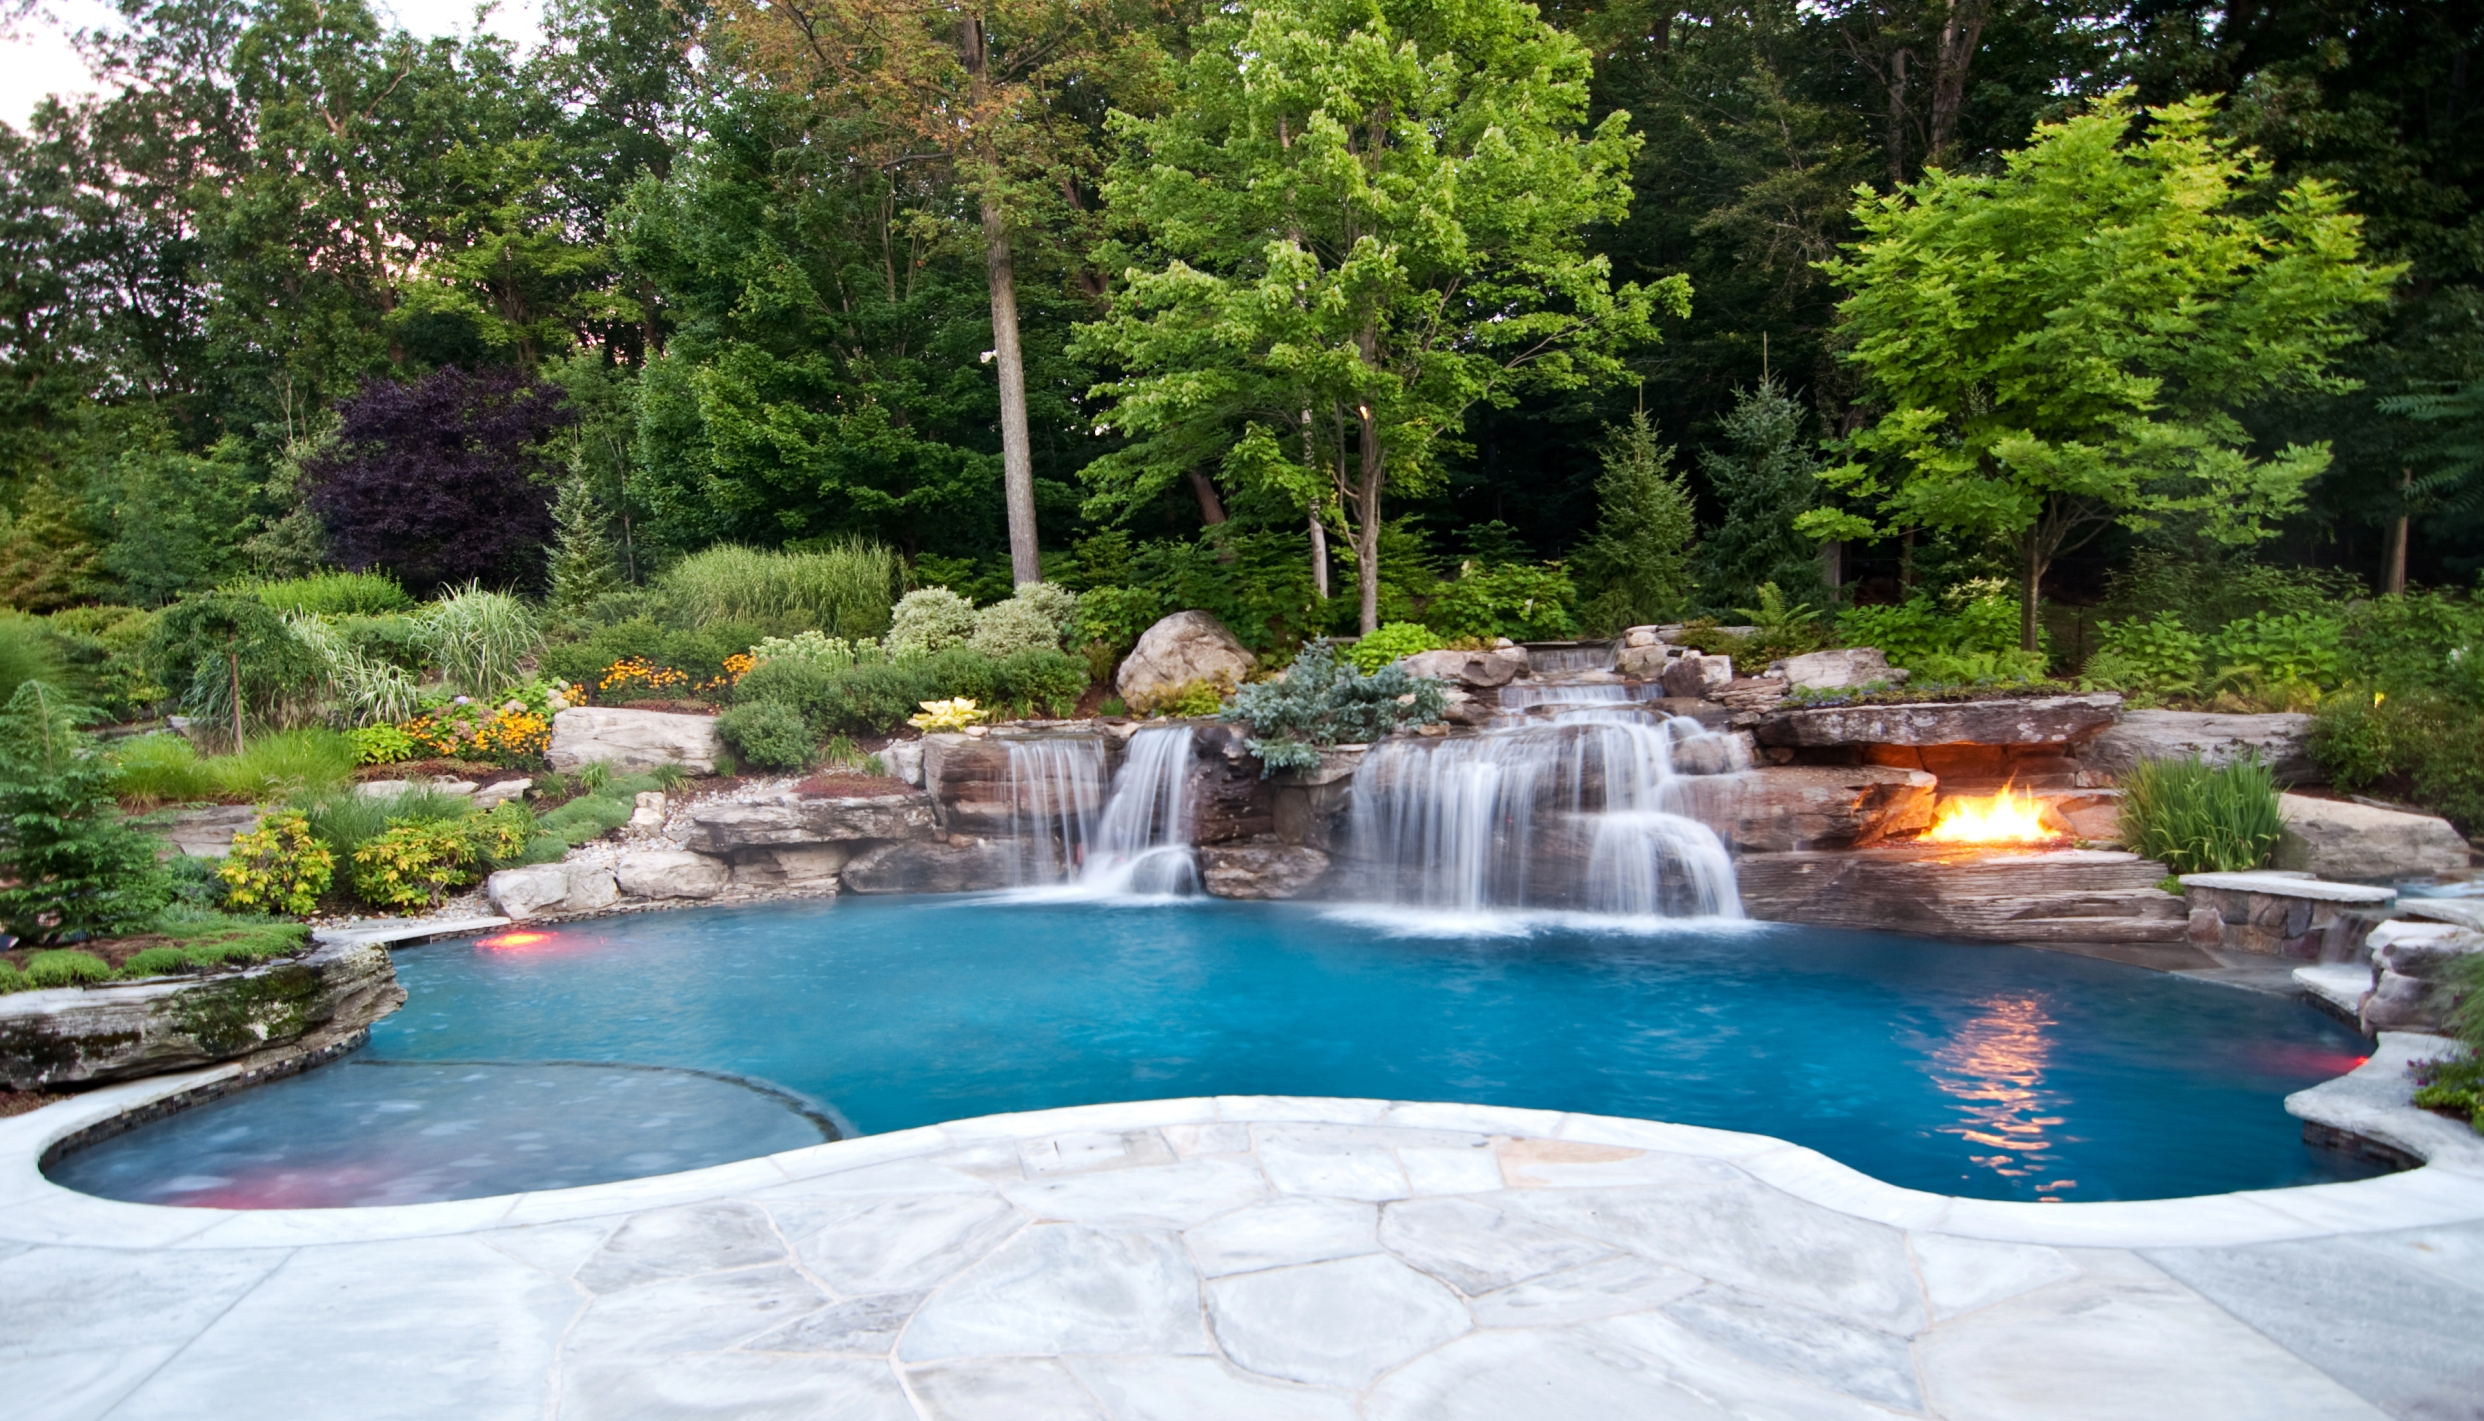 New jersey pool renovation company earns international for Pool and landscape design